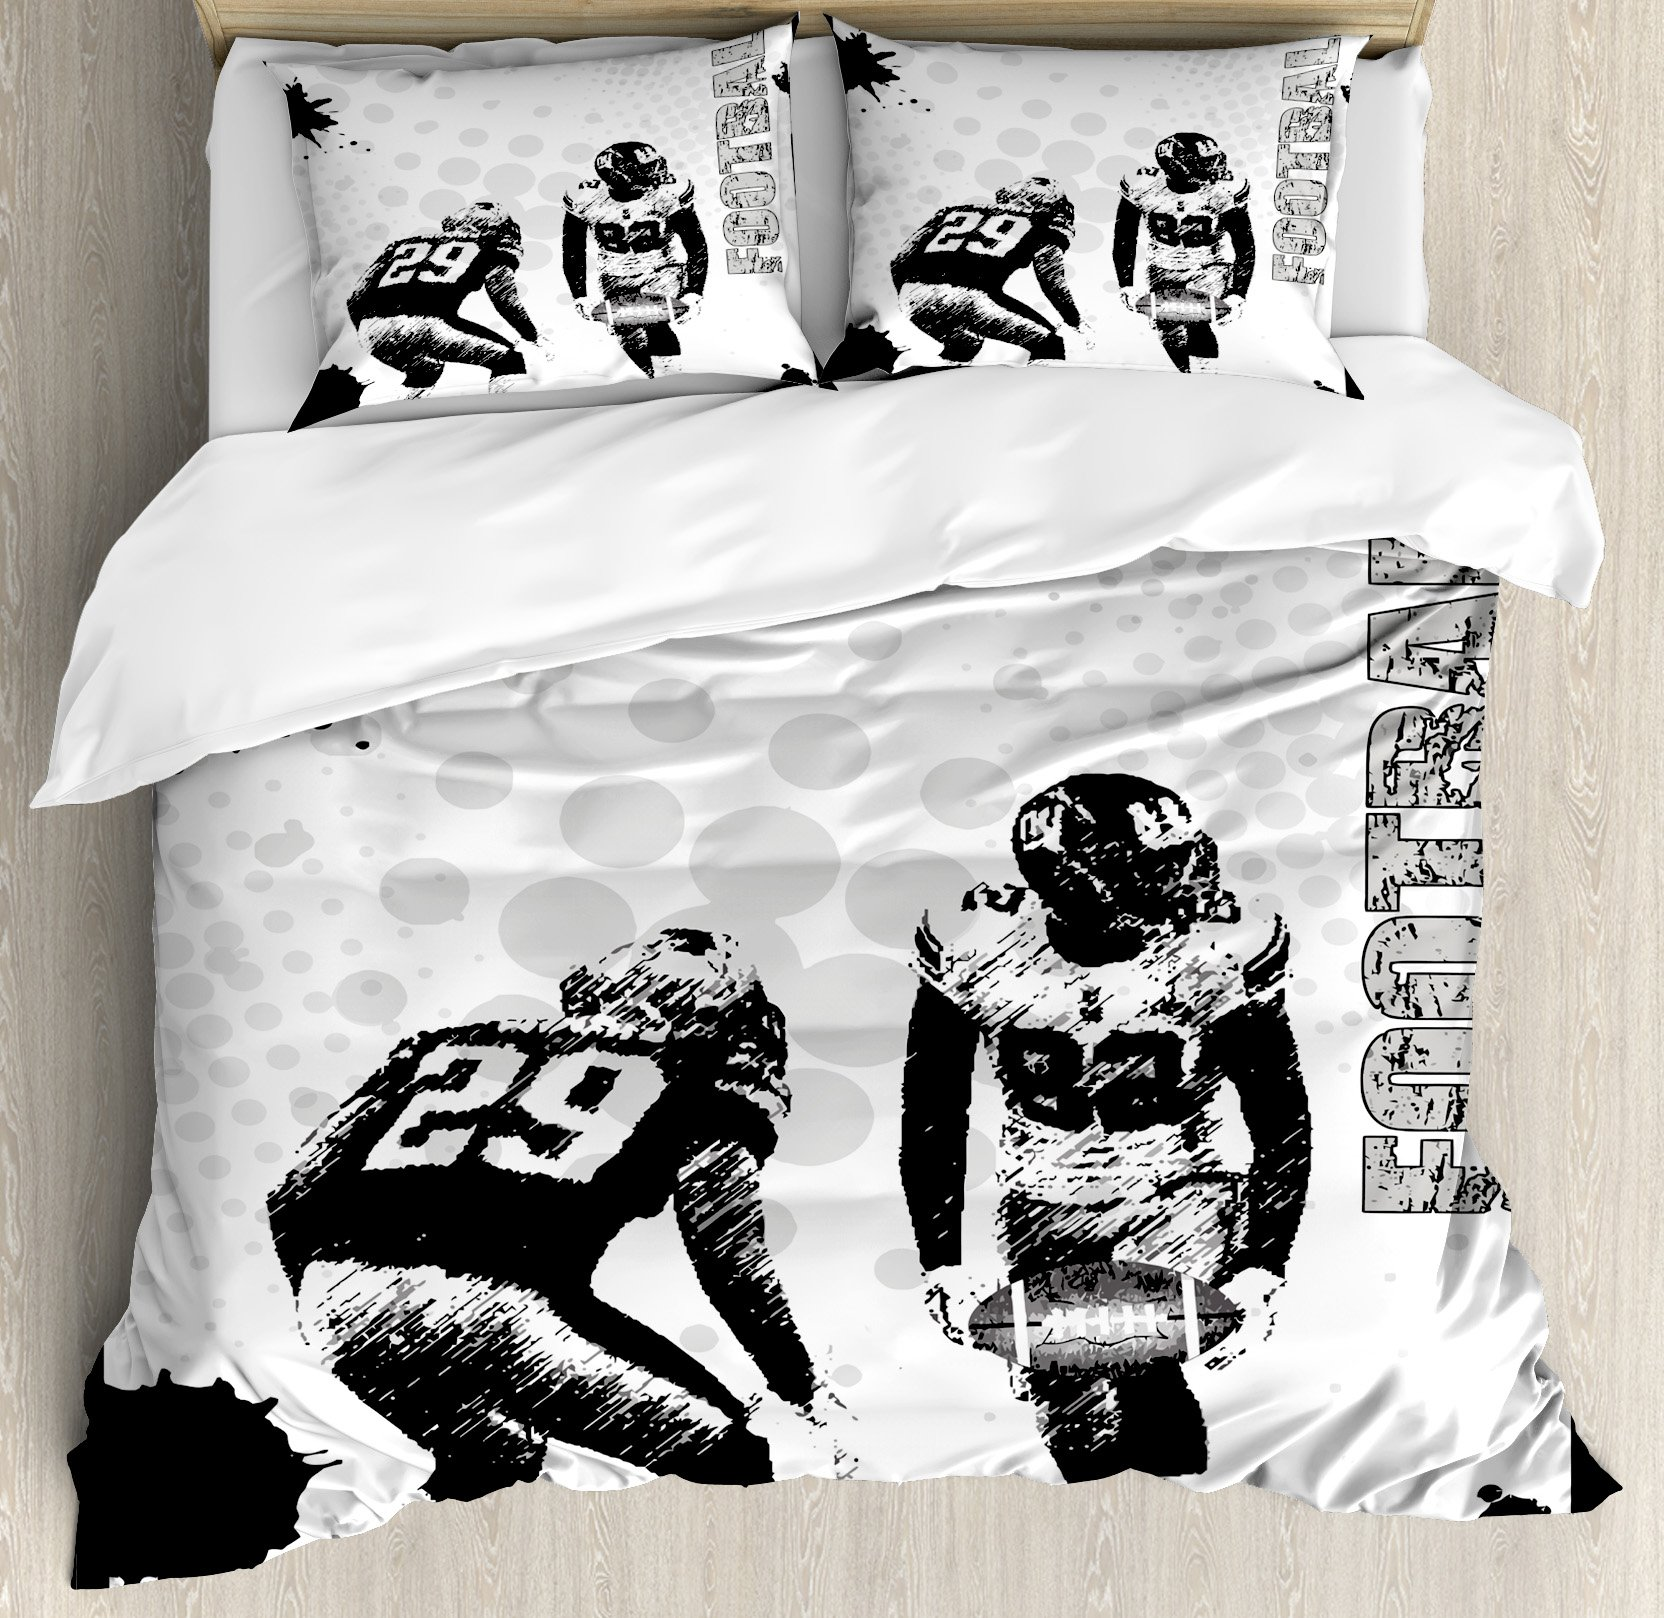 Sports Duvet Cover Set by Ambesonne, Grungy American Football Image International Team World Cup Kick Play Speed Victory, 3 Piece Bedding Set with Pillow Shams, Queen / Full, Black White